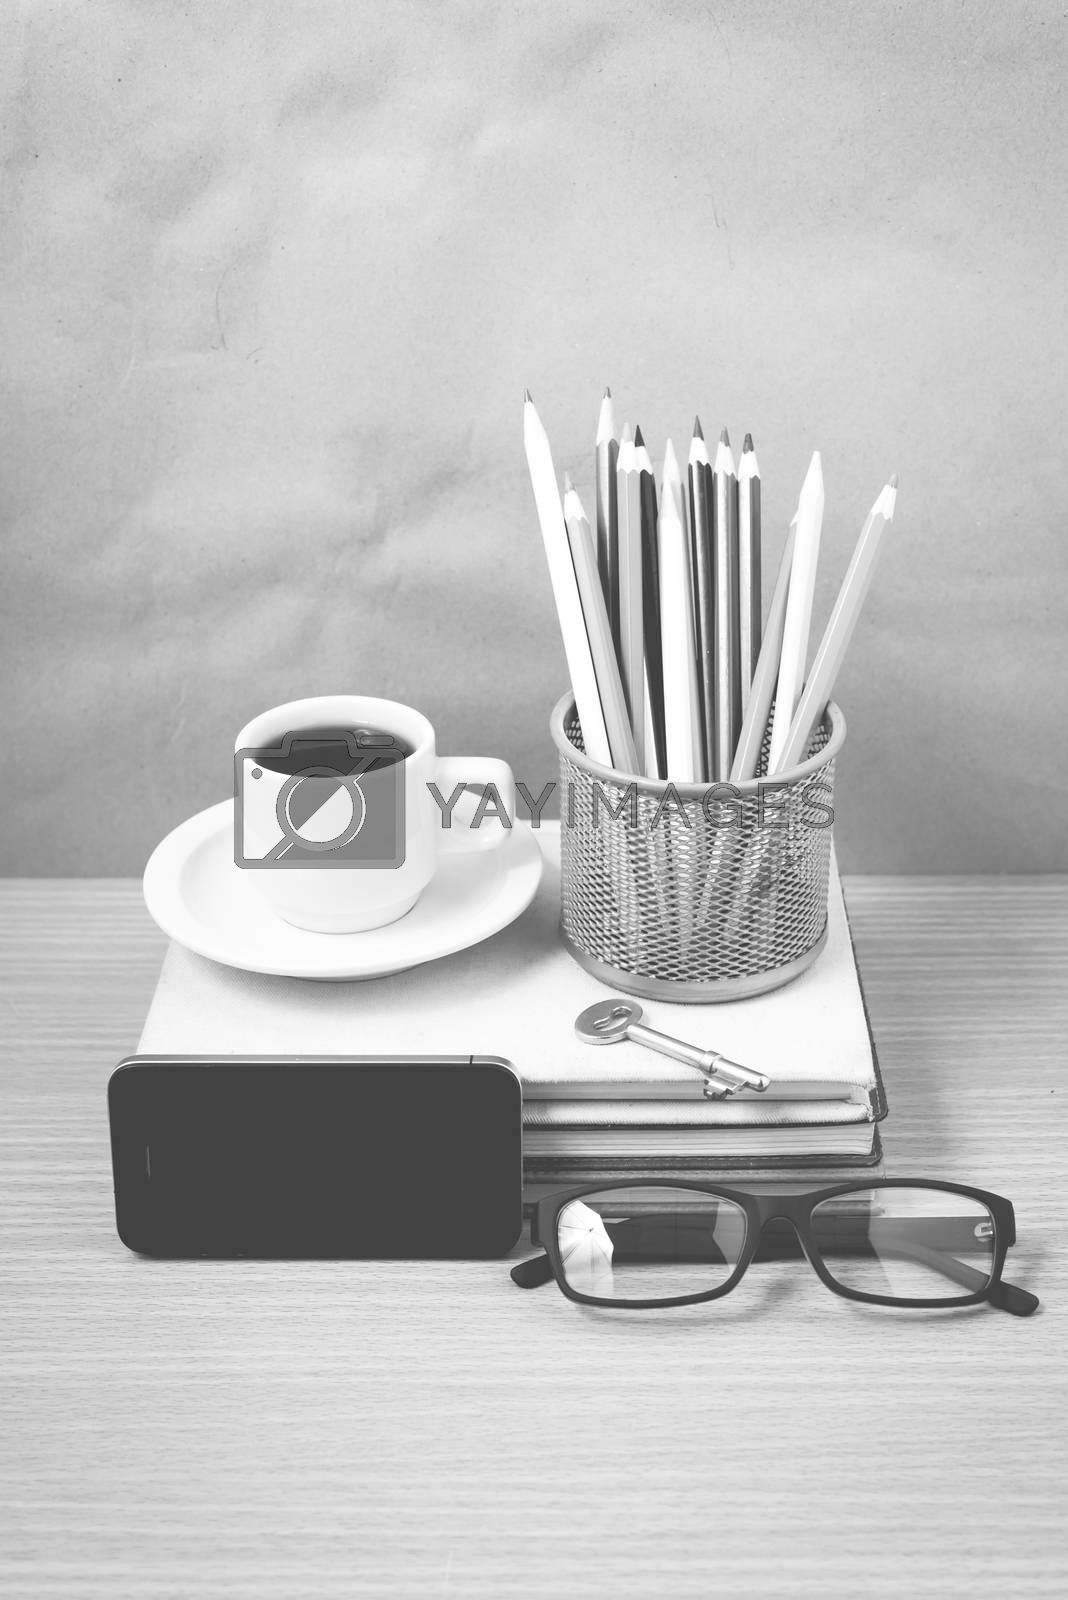 office desk : coffee and phone with key,eyeglasses,stack of book,pencil box black and white color